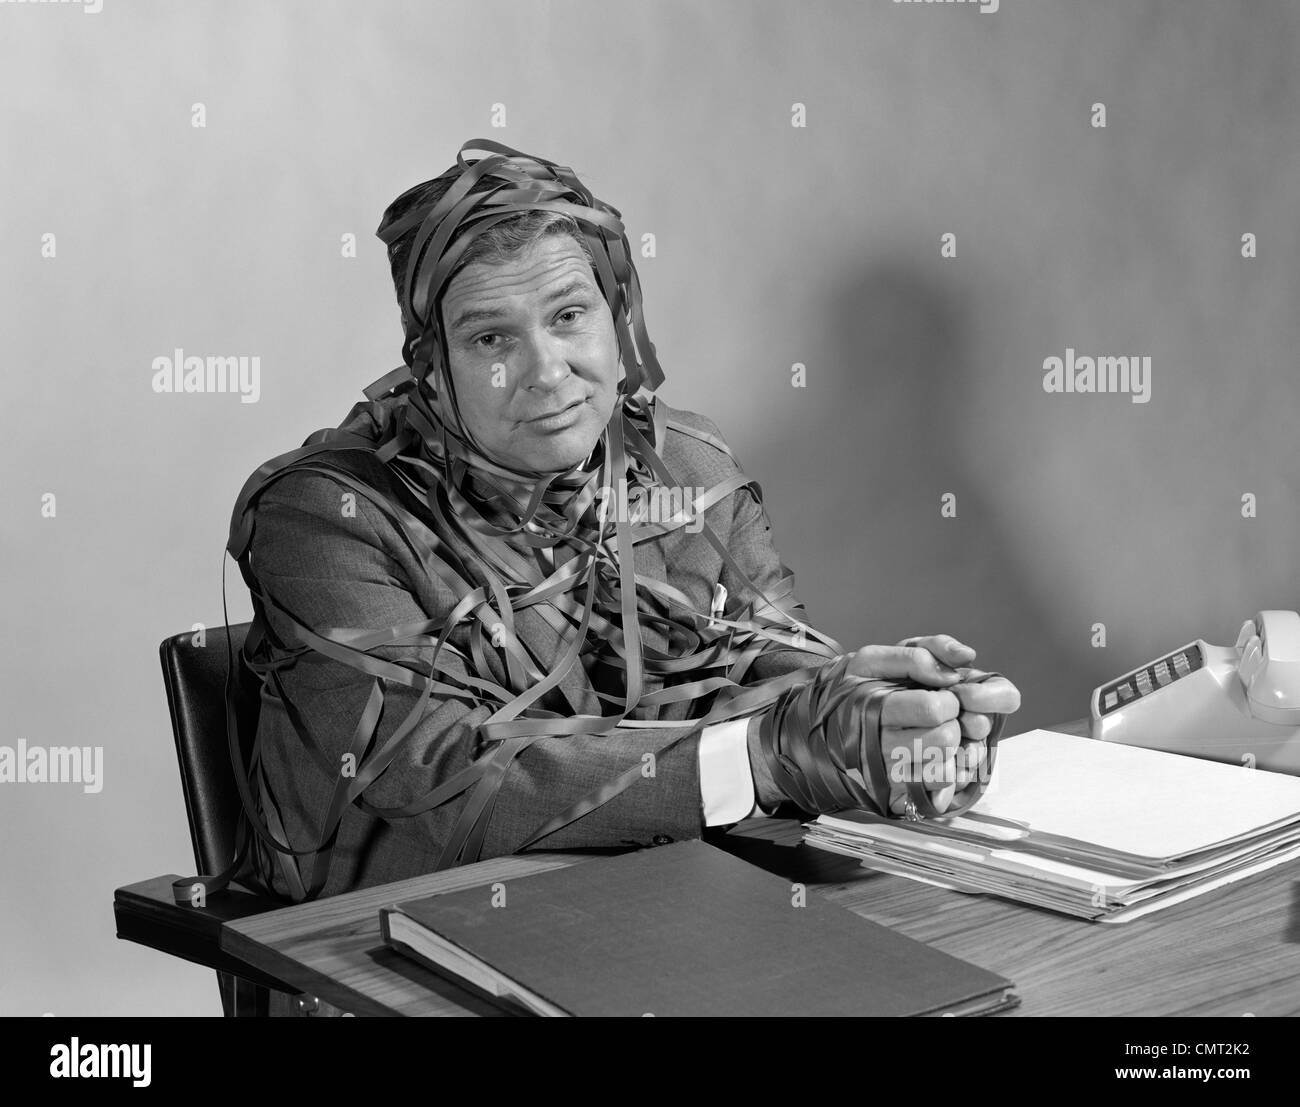 1960s BUSINESSMAN AT DESK HANDS AND TORSO WRAPPED IN TYPEWRITER RIBBON RED TAPE LOOKING AT CAMERA - Stock Image